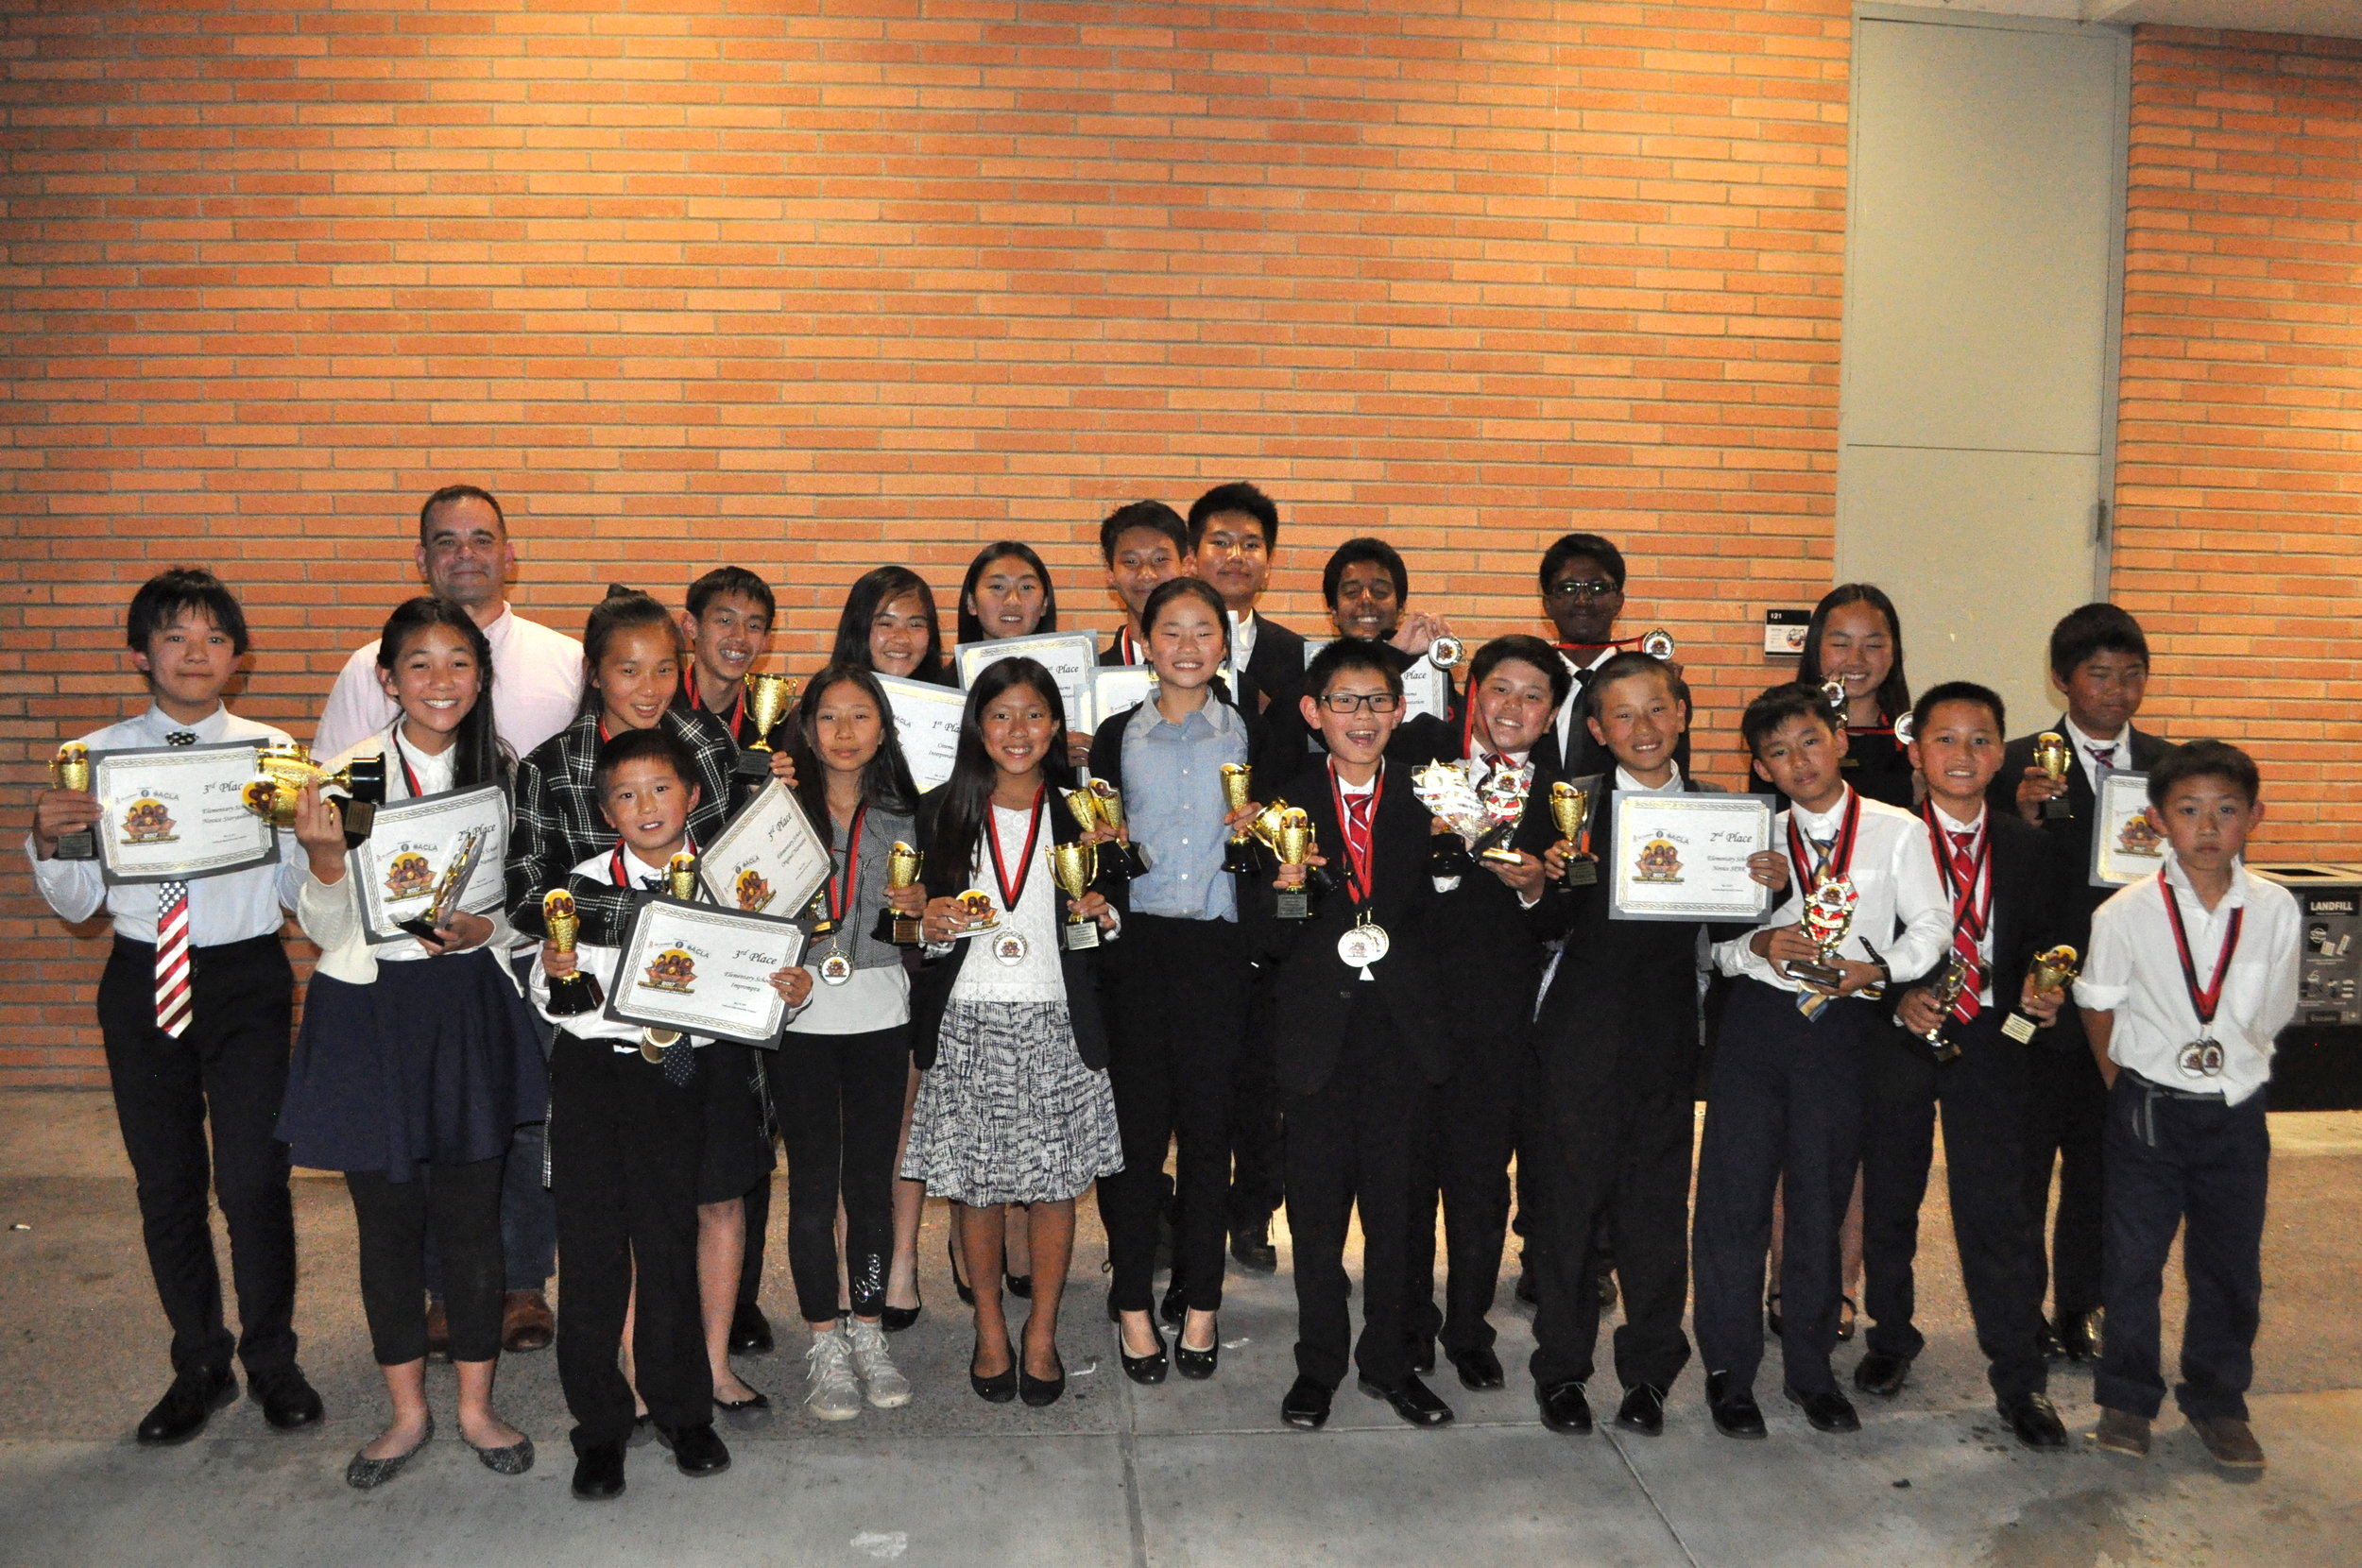 Congratulations students for your amazing performance at NCACF!